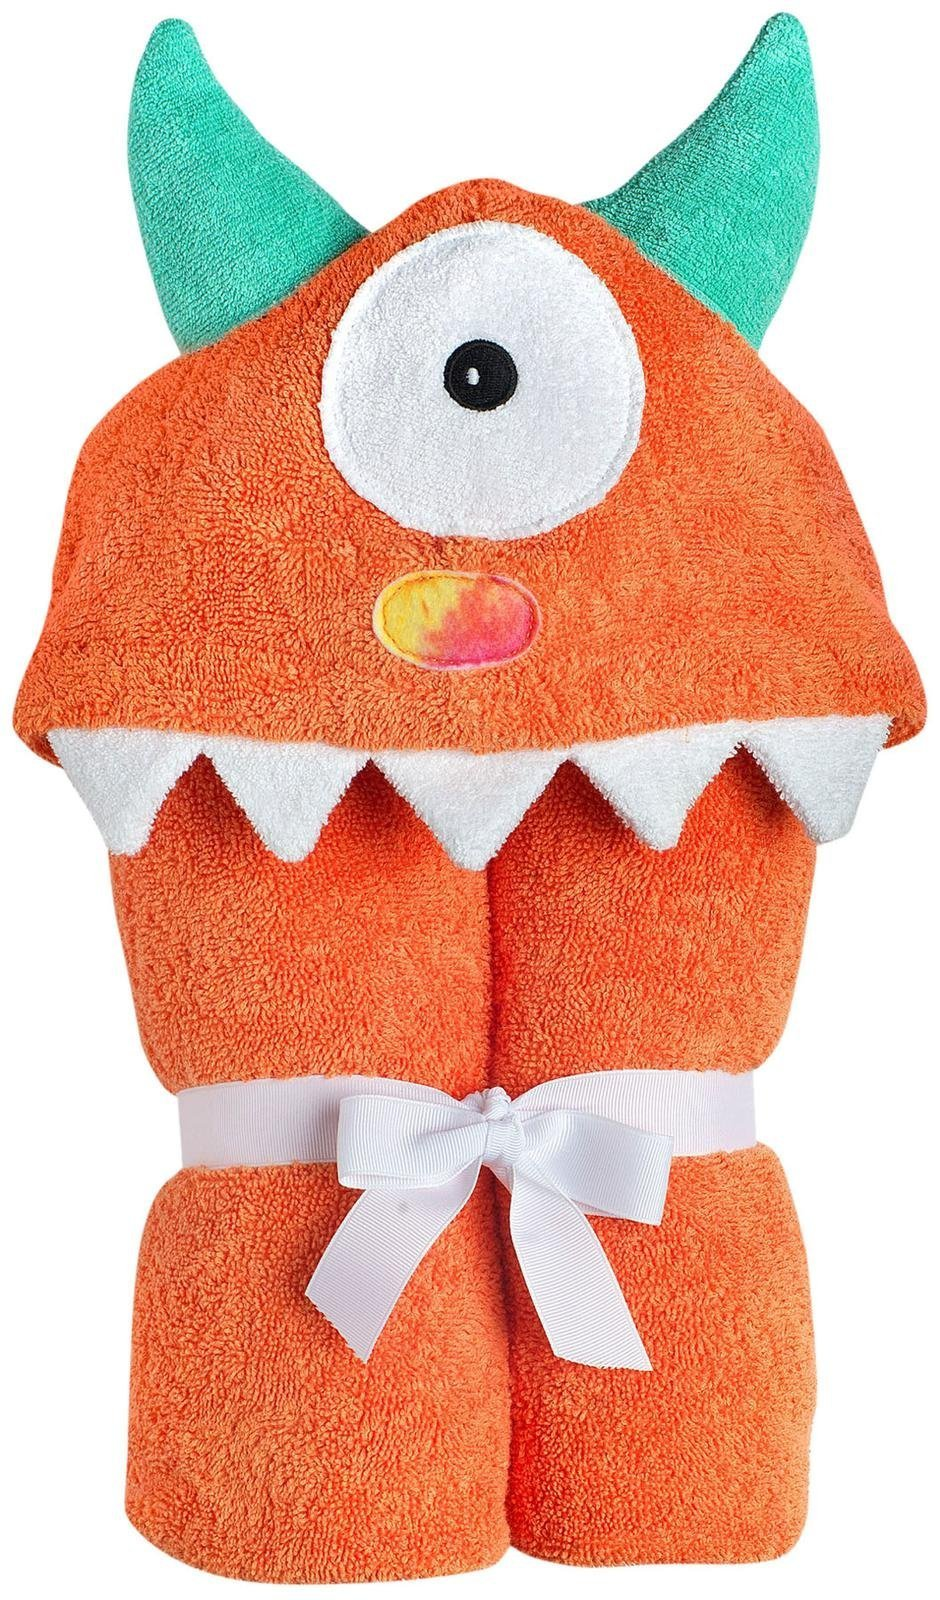 Yikes Twins Child Hooded Towel - Orange One Eyed Monster by Yikes Twins